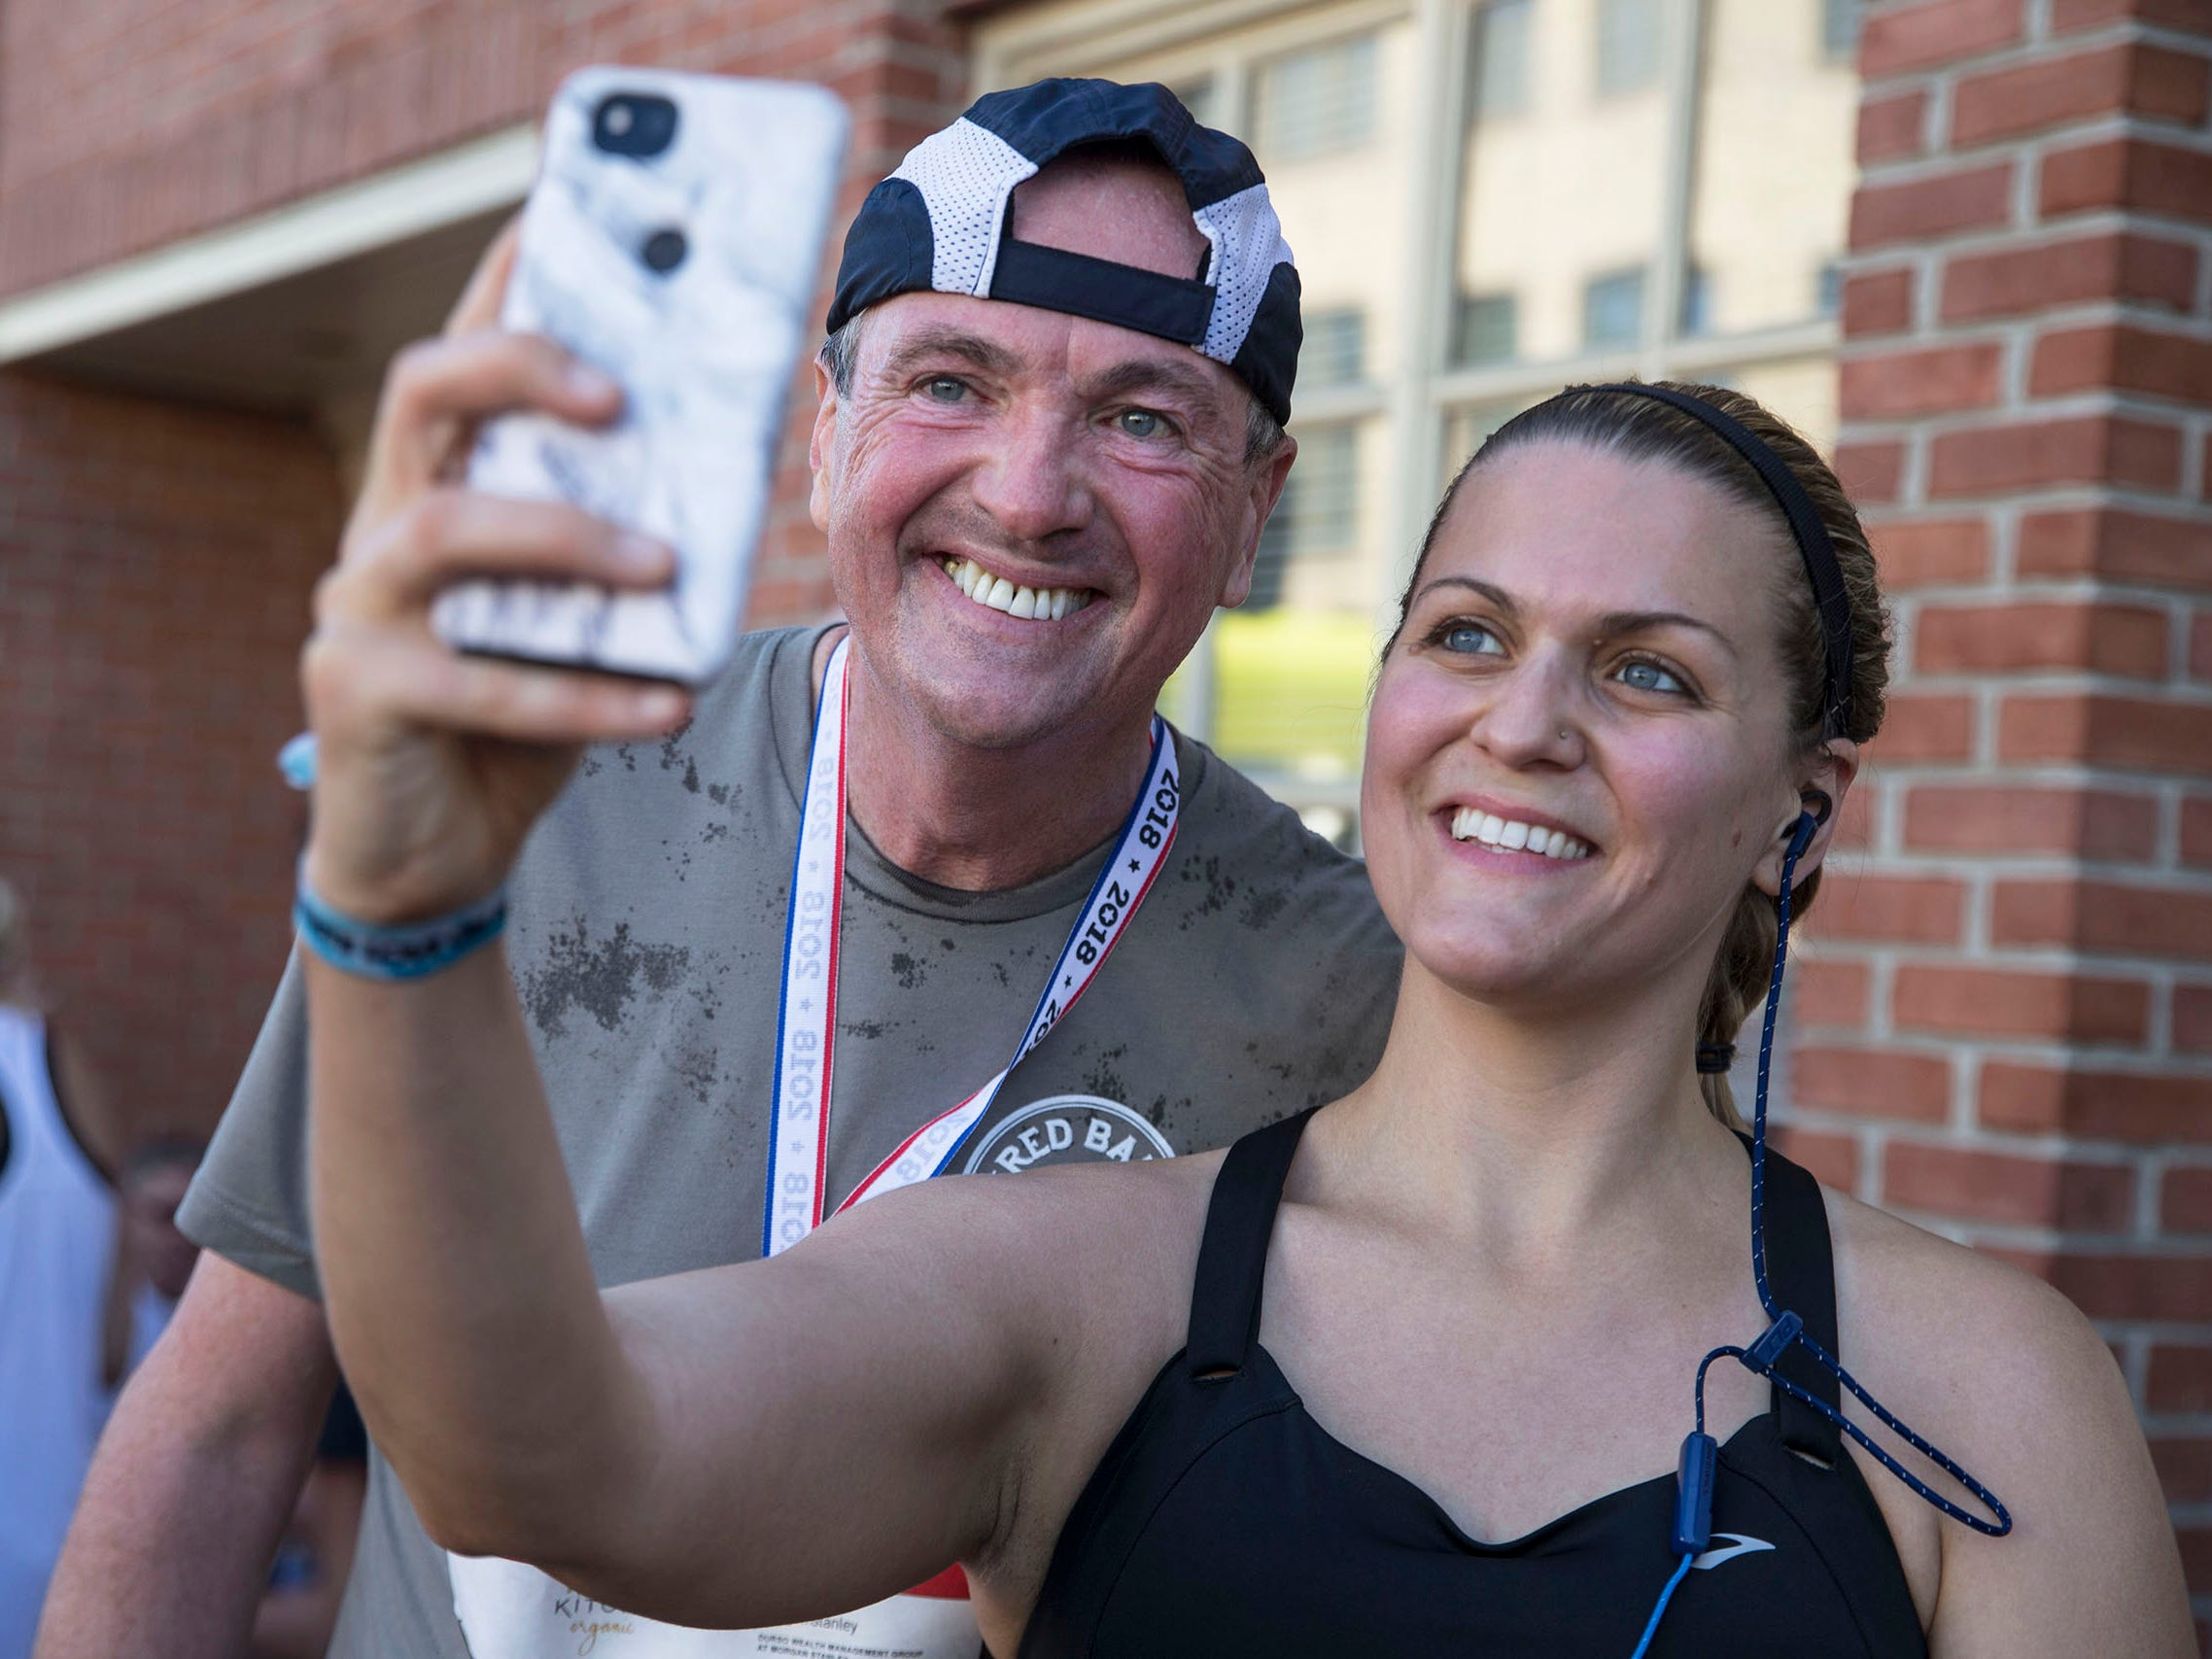 Gov. Phil Murphy and his wife, Tammy, participate as runners in the 5K Red Bank Classic in downtown Red Bank with approximately 1,100 others.  Red Bank, NJ on Saturday, June 16, 2018